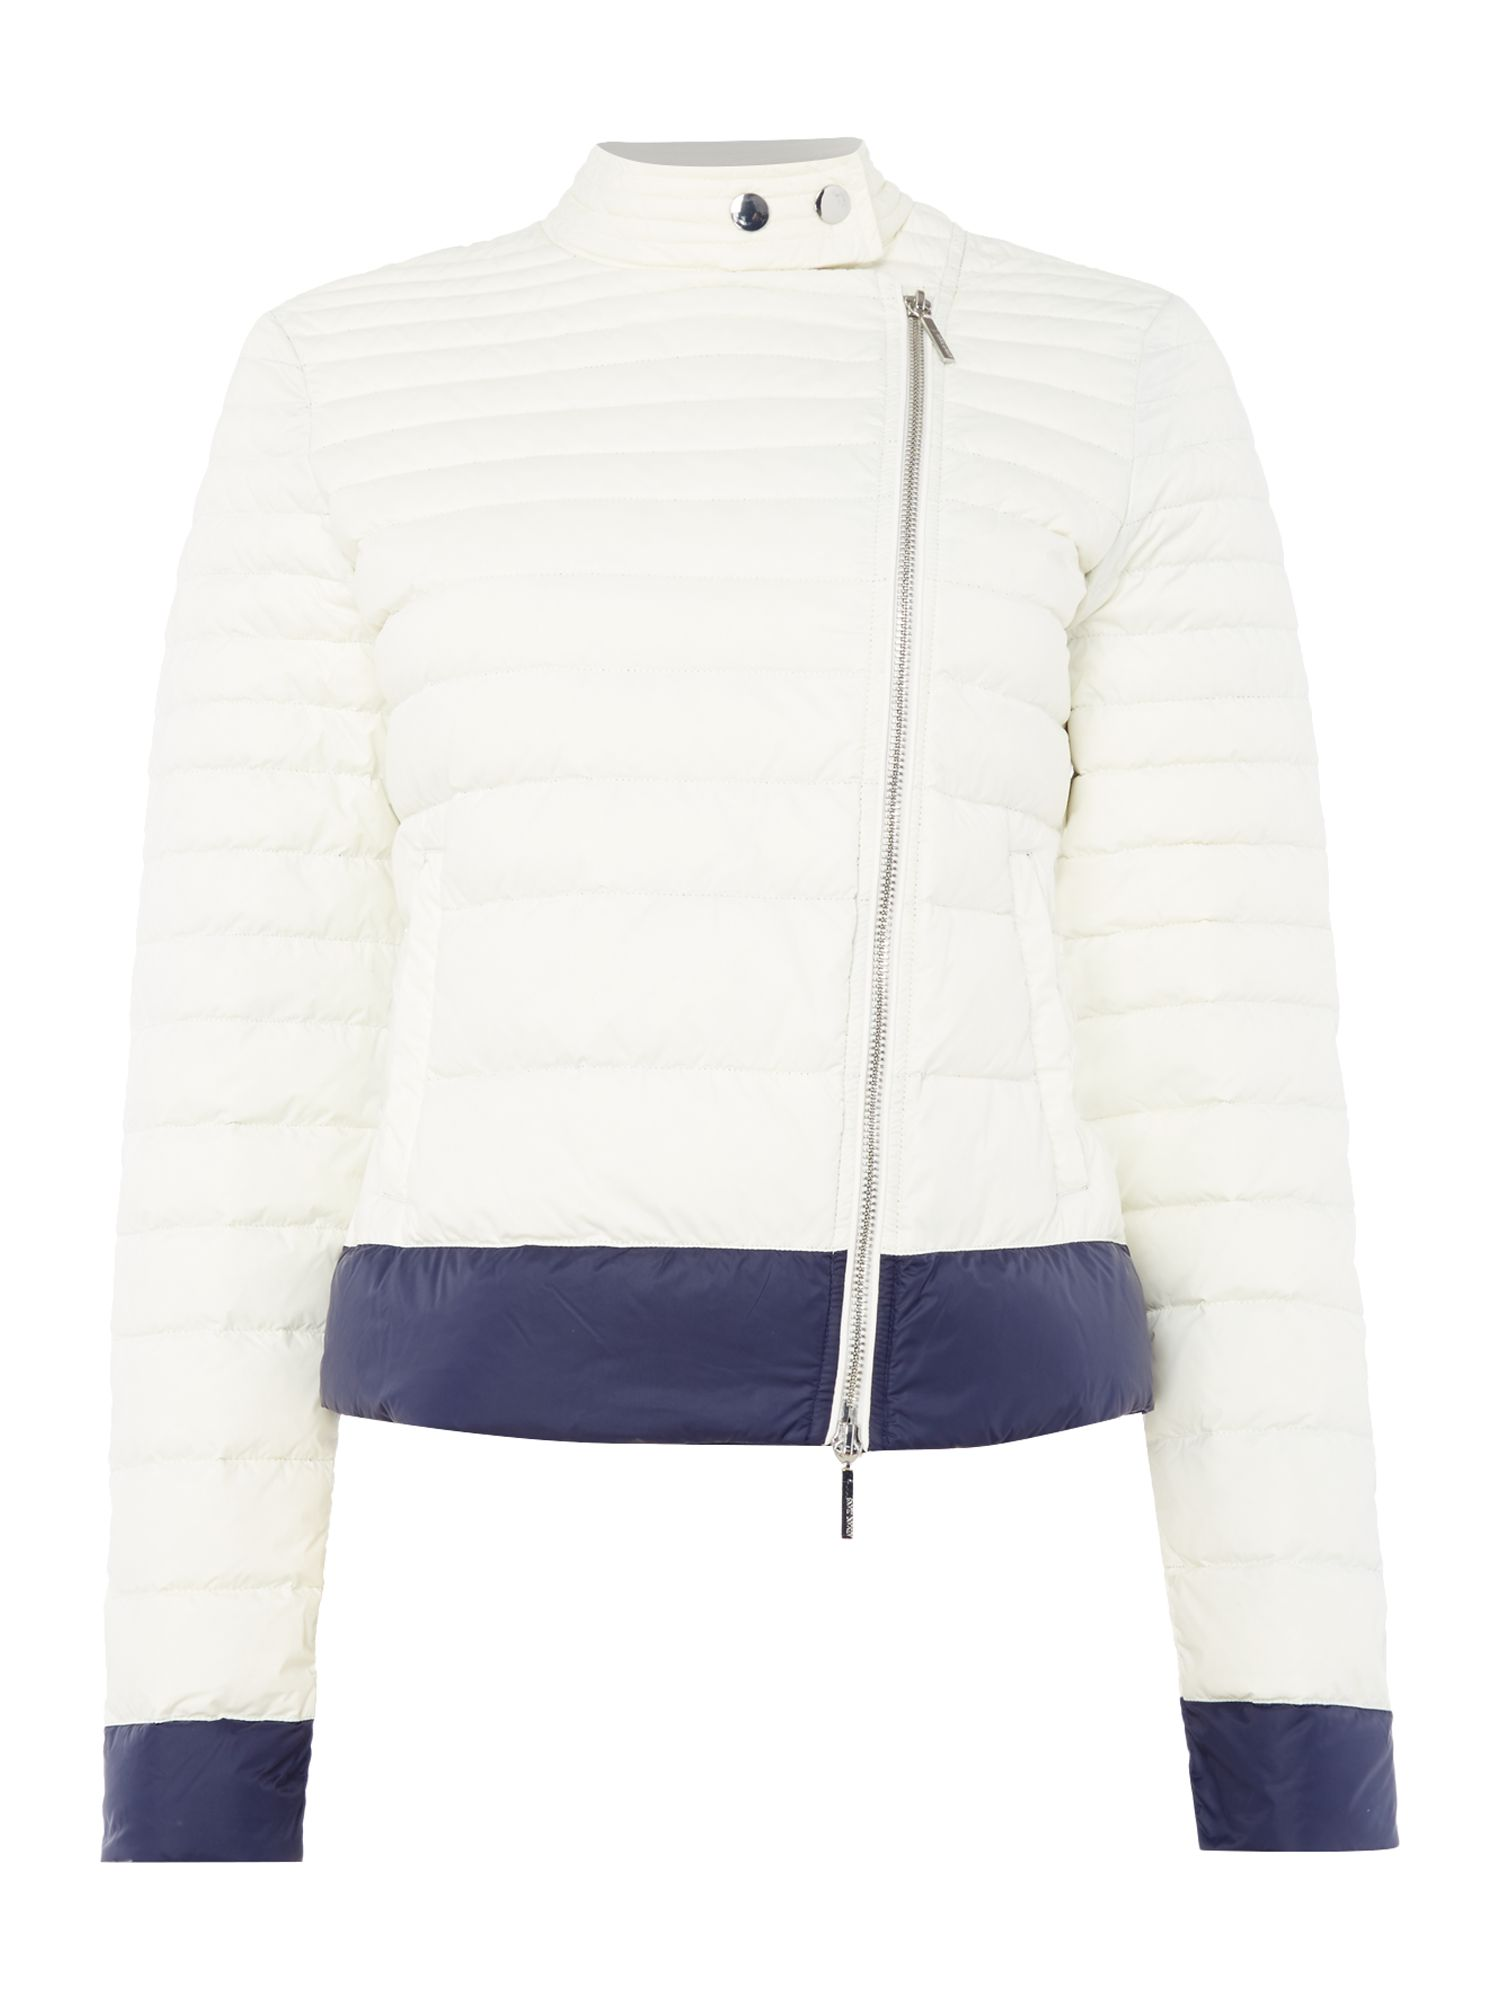 Armani Jeans Cropped puffer jacket in bianco latte, Grey